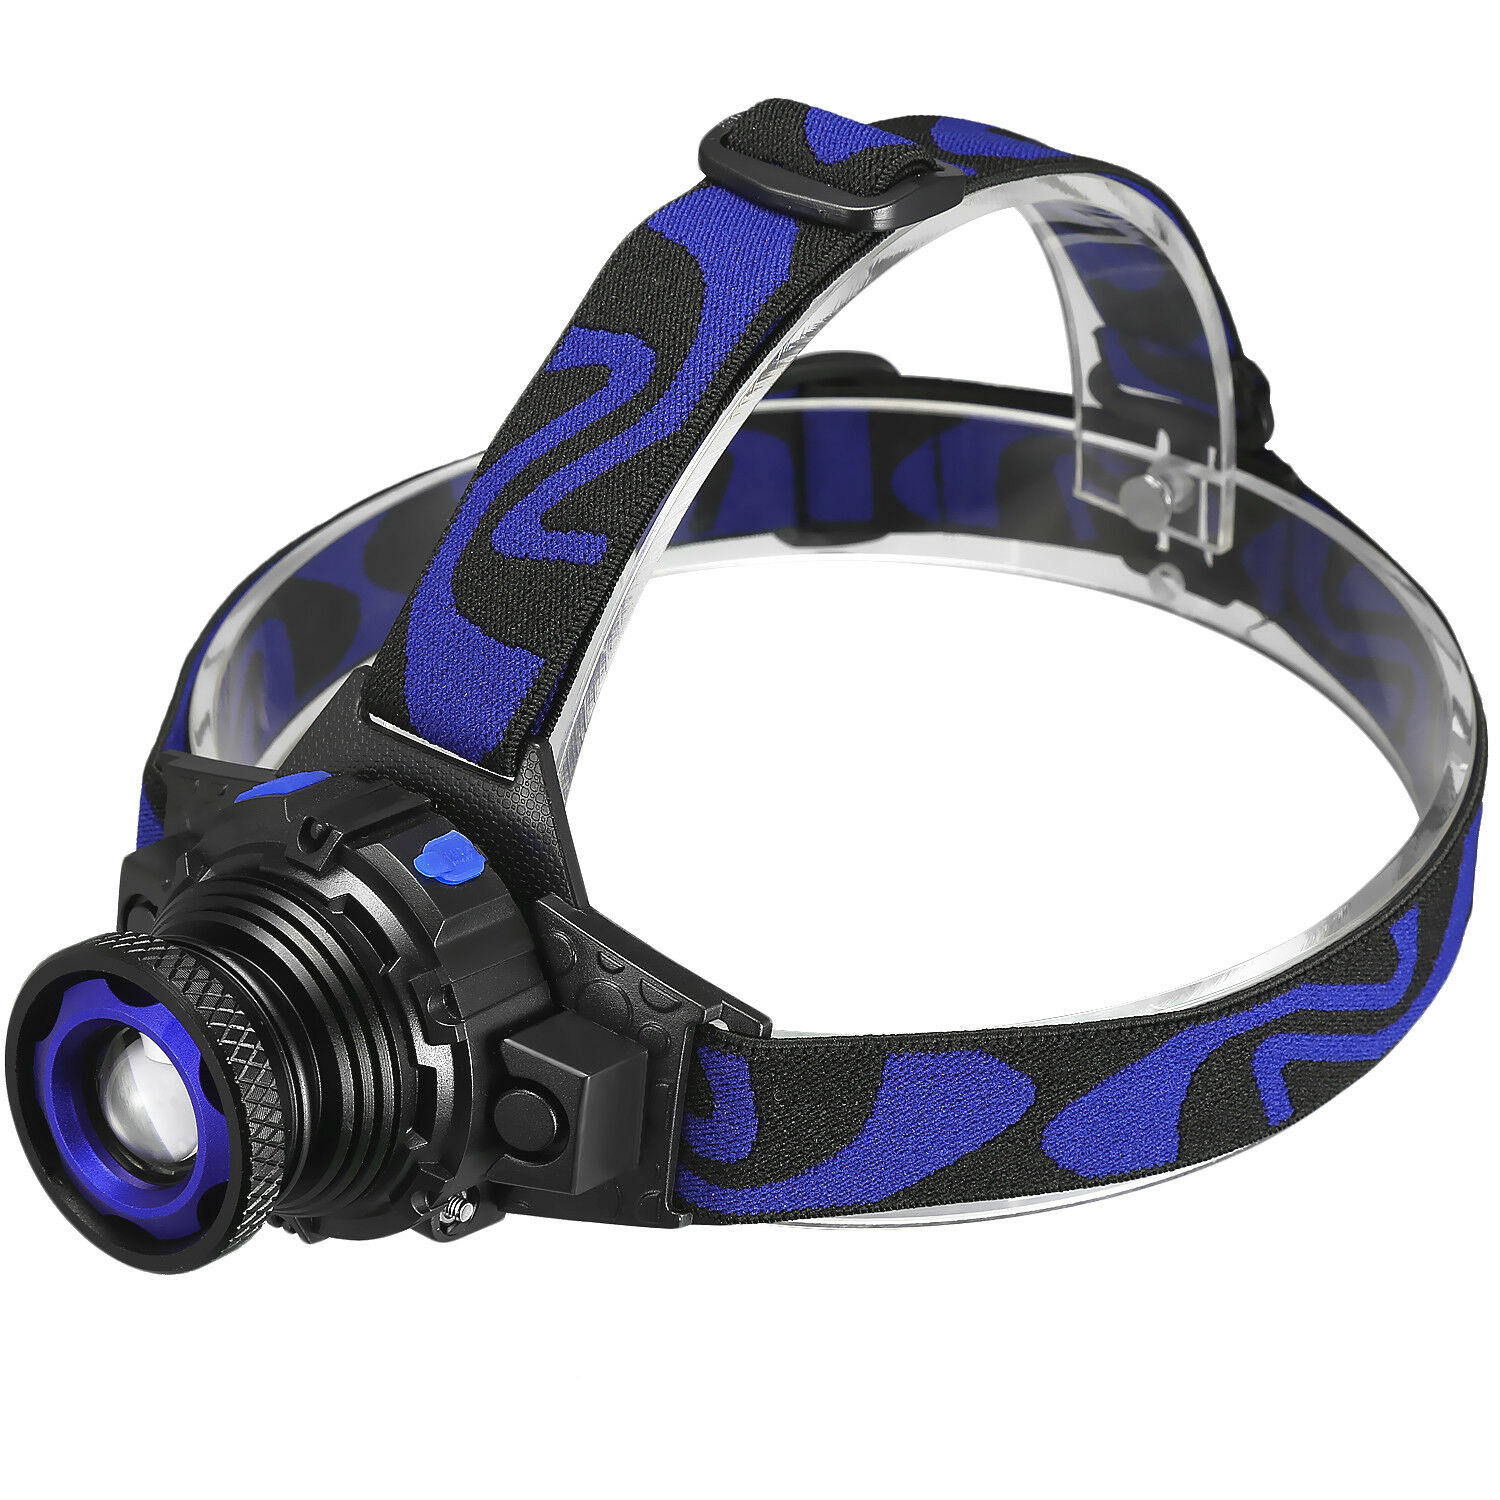 Tactical Headlight Cree XM-L 20000LM Rechargeable T6 LED Headlamp+Batt+Charger Camping & Hiking